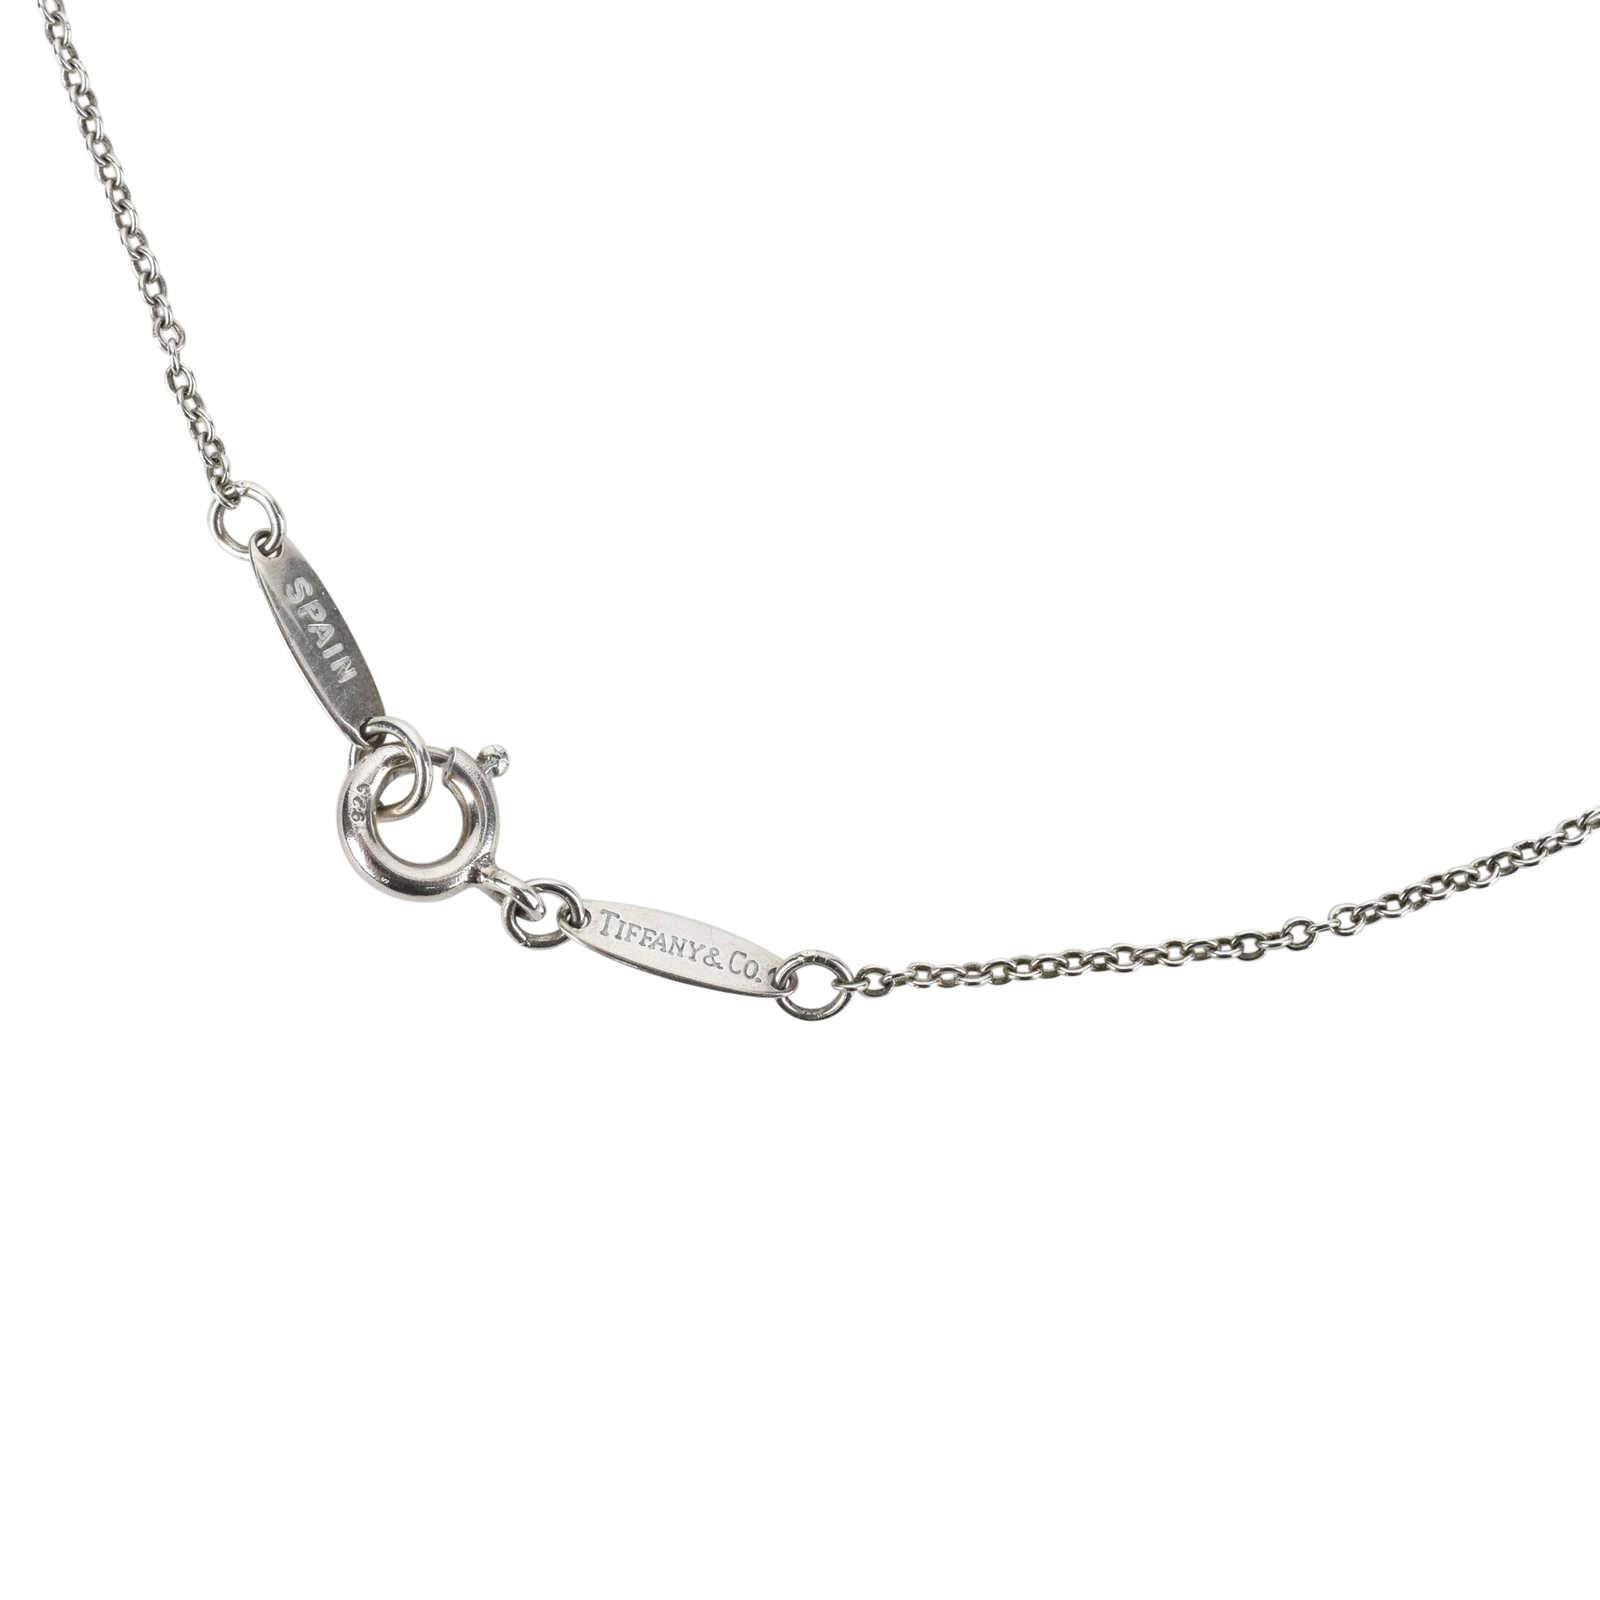 Tiffany and co letter necklace the best letter 2018 elsa peretti letter k pendant in sterling silver small aloadofball Image collections